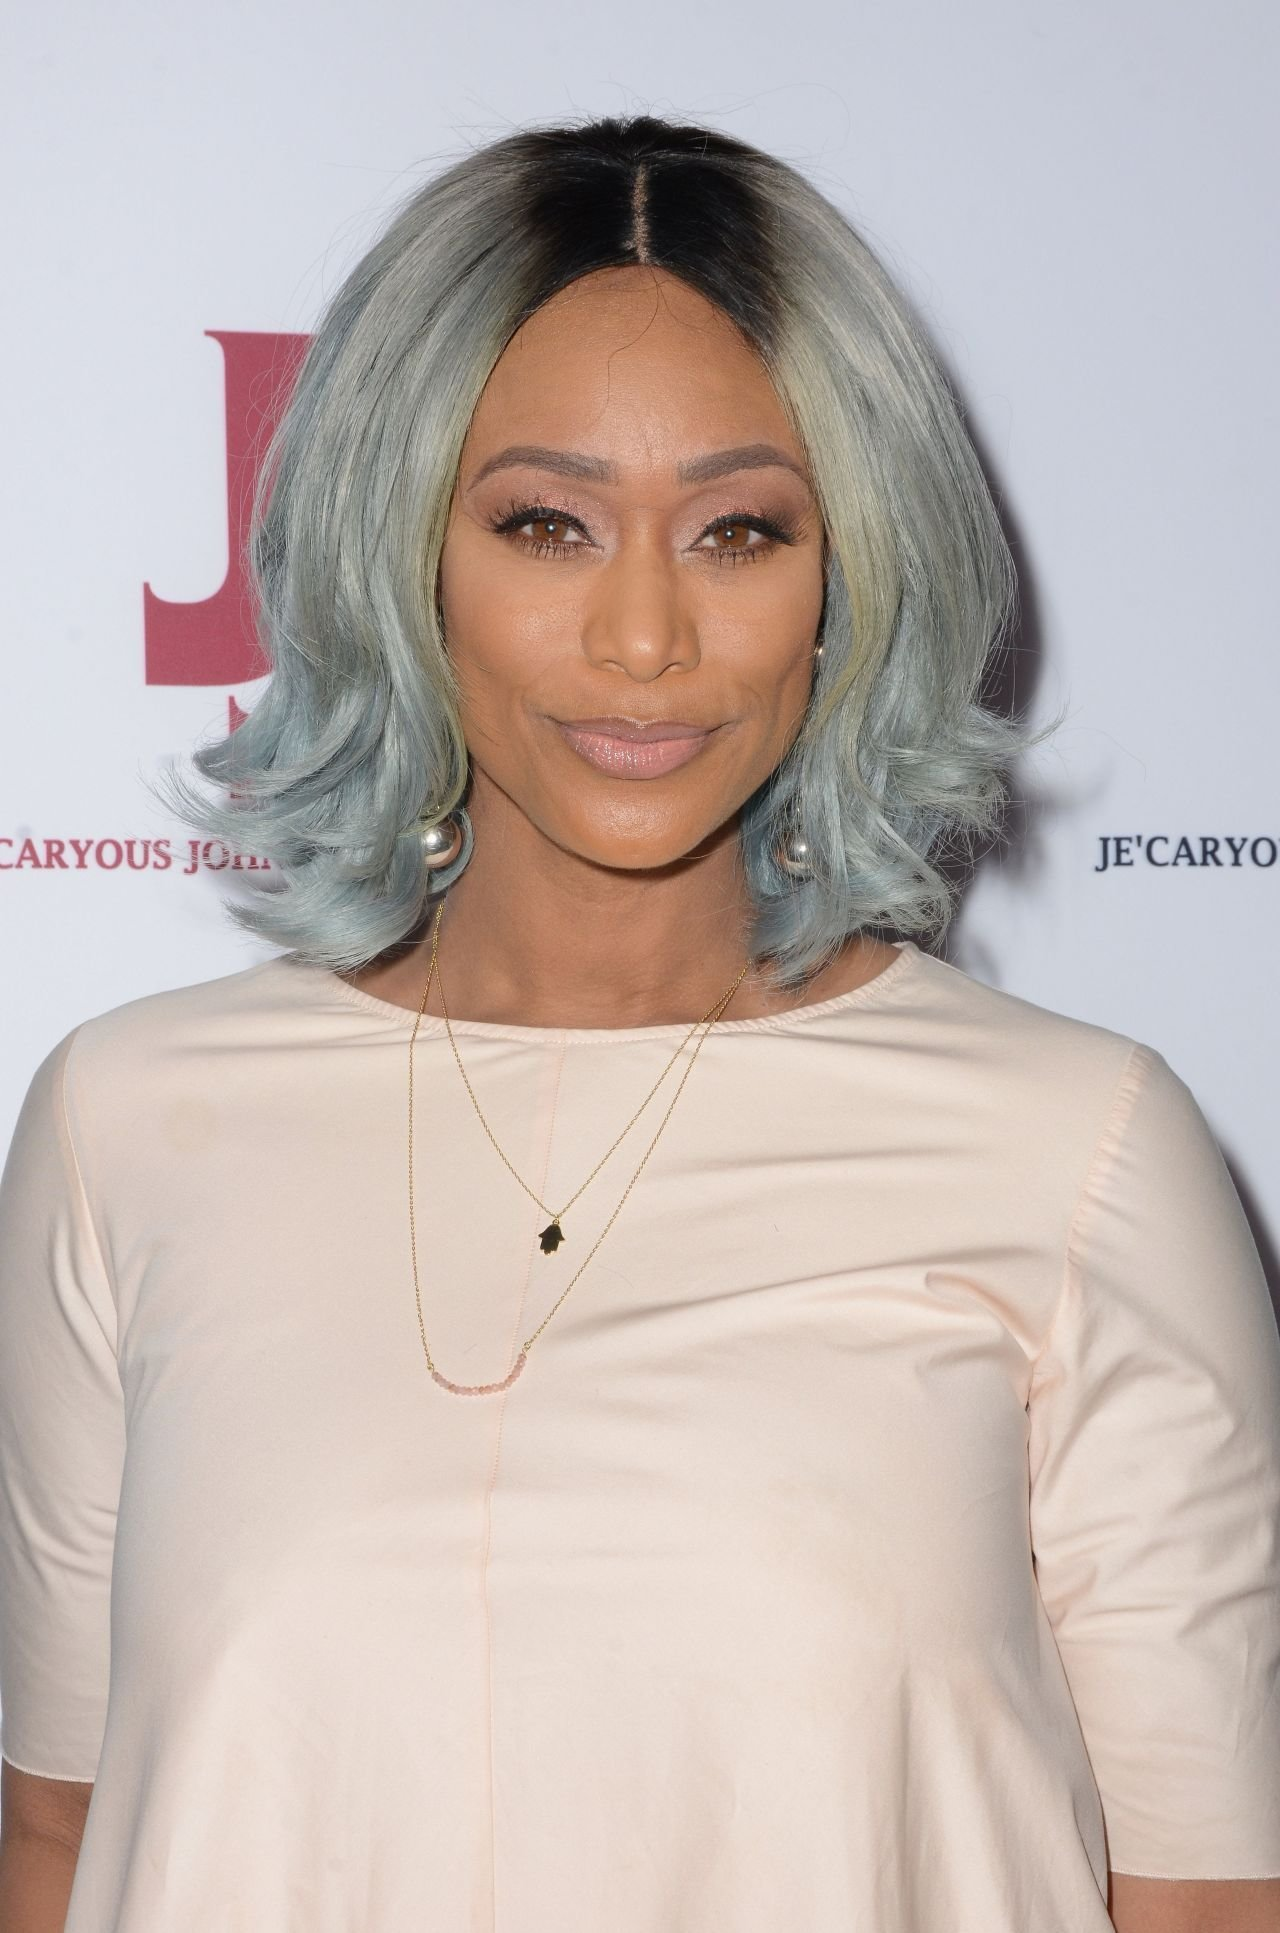 The Best Tami Roman – 'Je'caryous Johnson's Married But Single Pictures